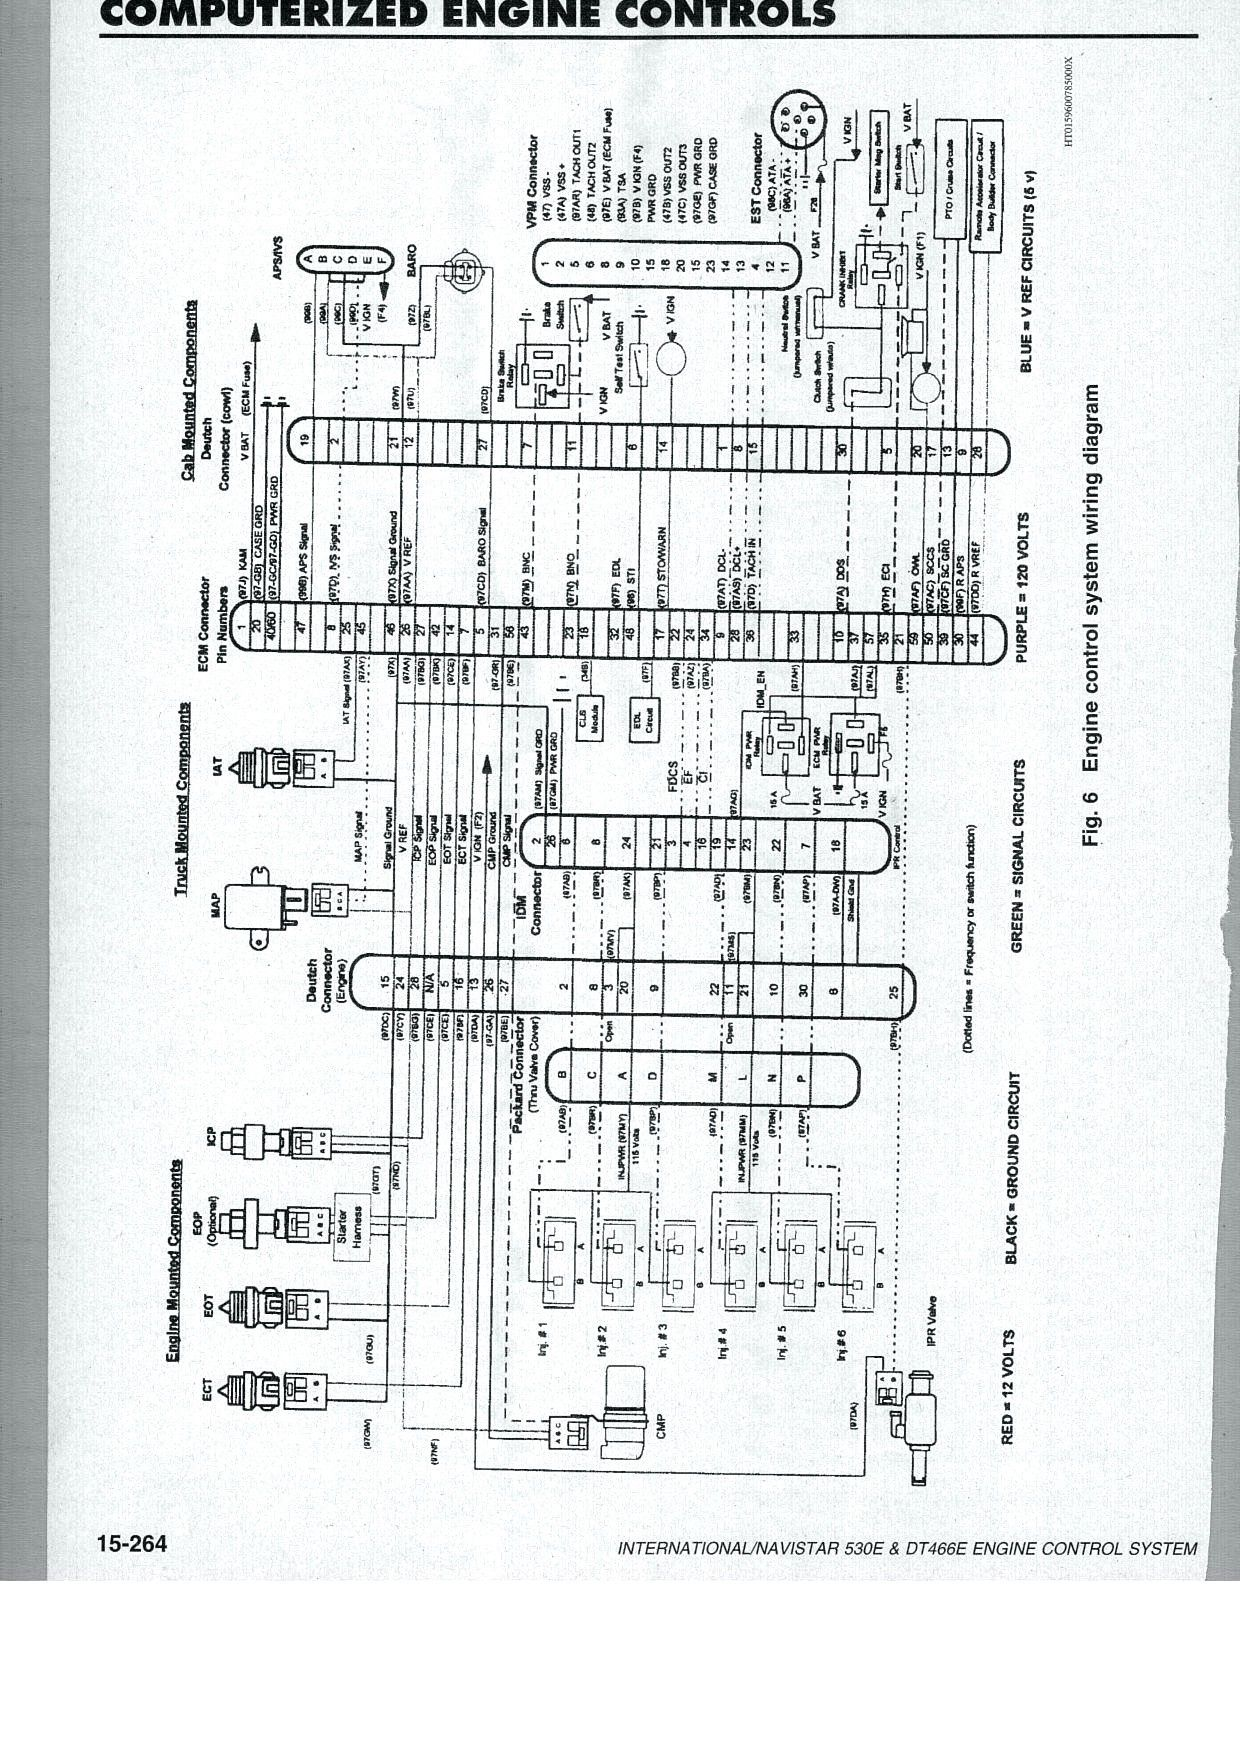 Unique Wiring Plan Diagram Wiringdiagram Diagramming Diagramm